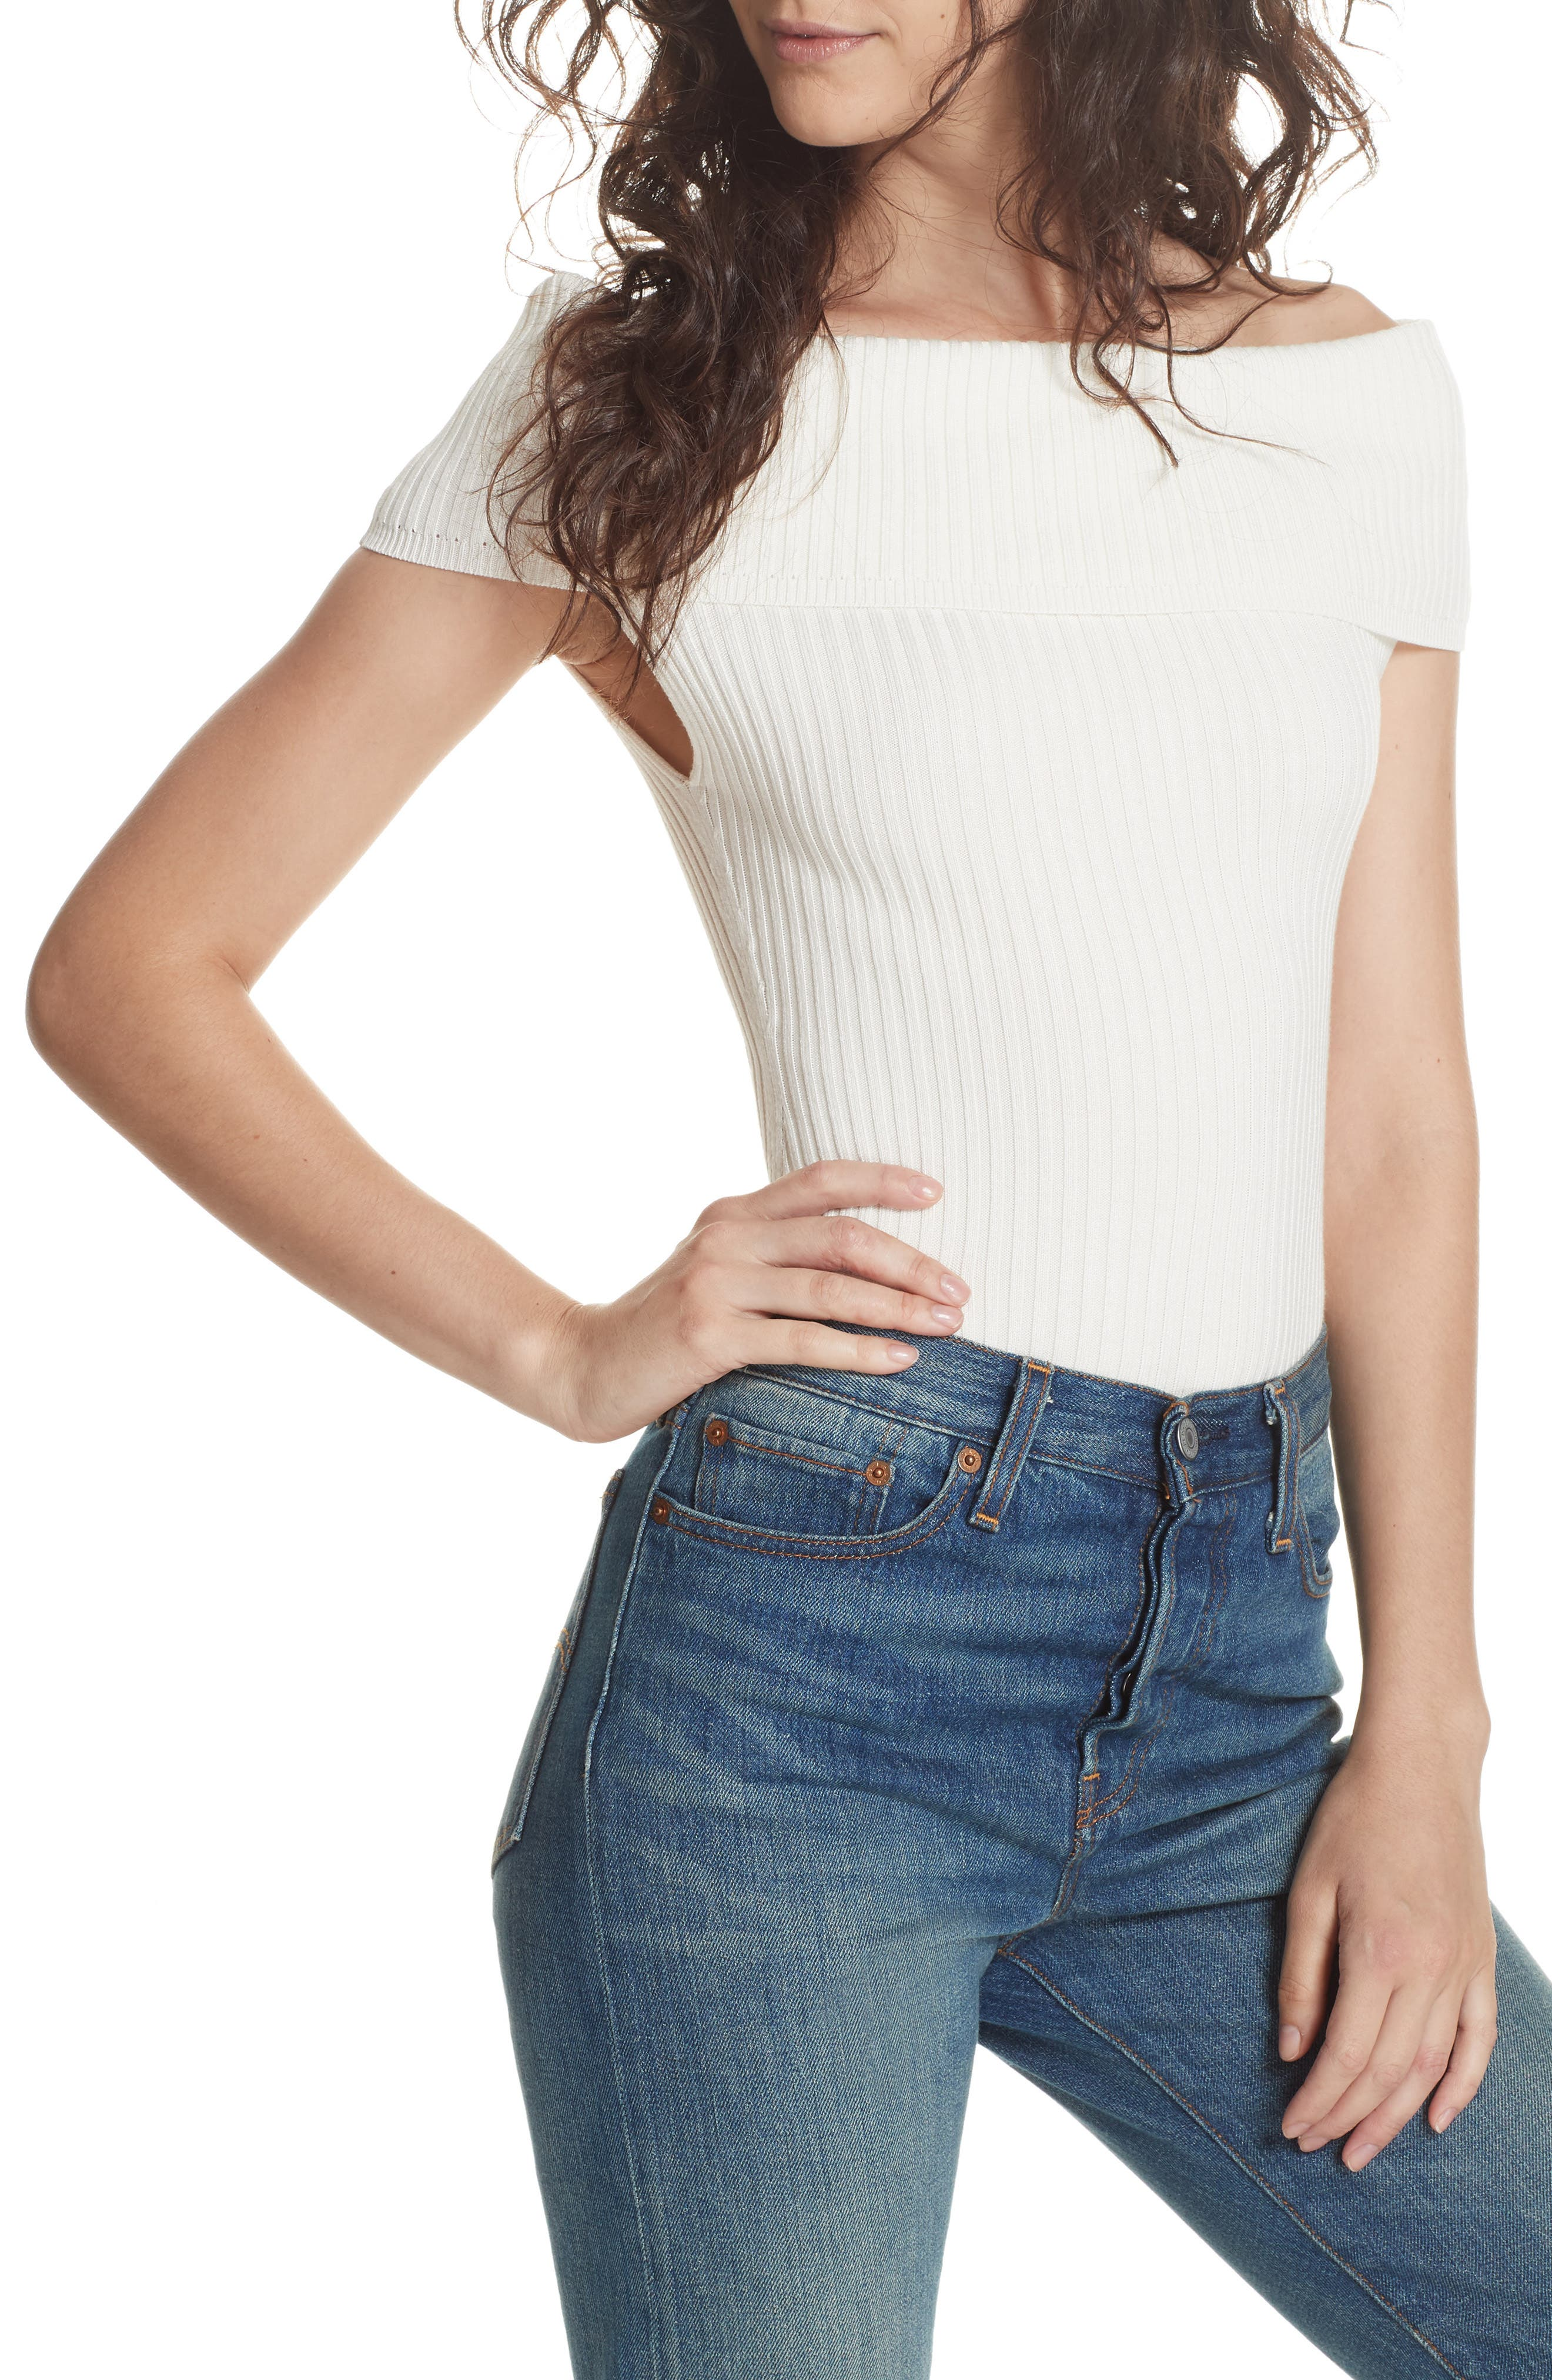 Too Good Bodysuit,                         Main,                         color, IVORY